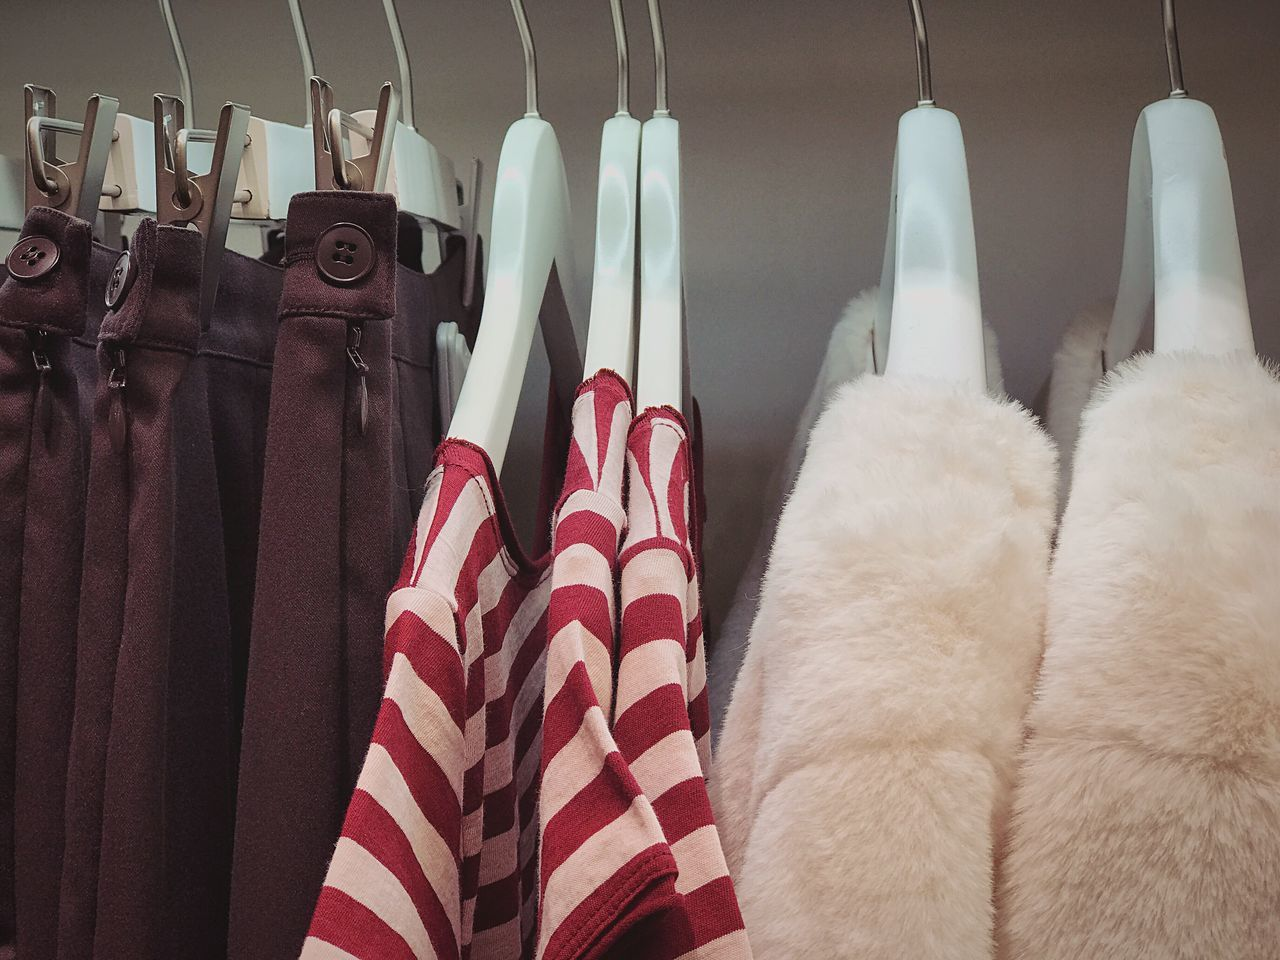 Hanging Clothing Cultures Coathanger No People Close-up Choice Day Clothes Stripes Pattern Jacket T-shirt Shop Boutique Store Collection Warm Large Group Of Objects Variation Choice Retail  Clothes Rack Clothing Store Hanging Fashion